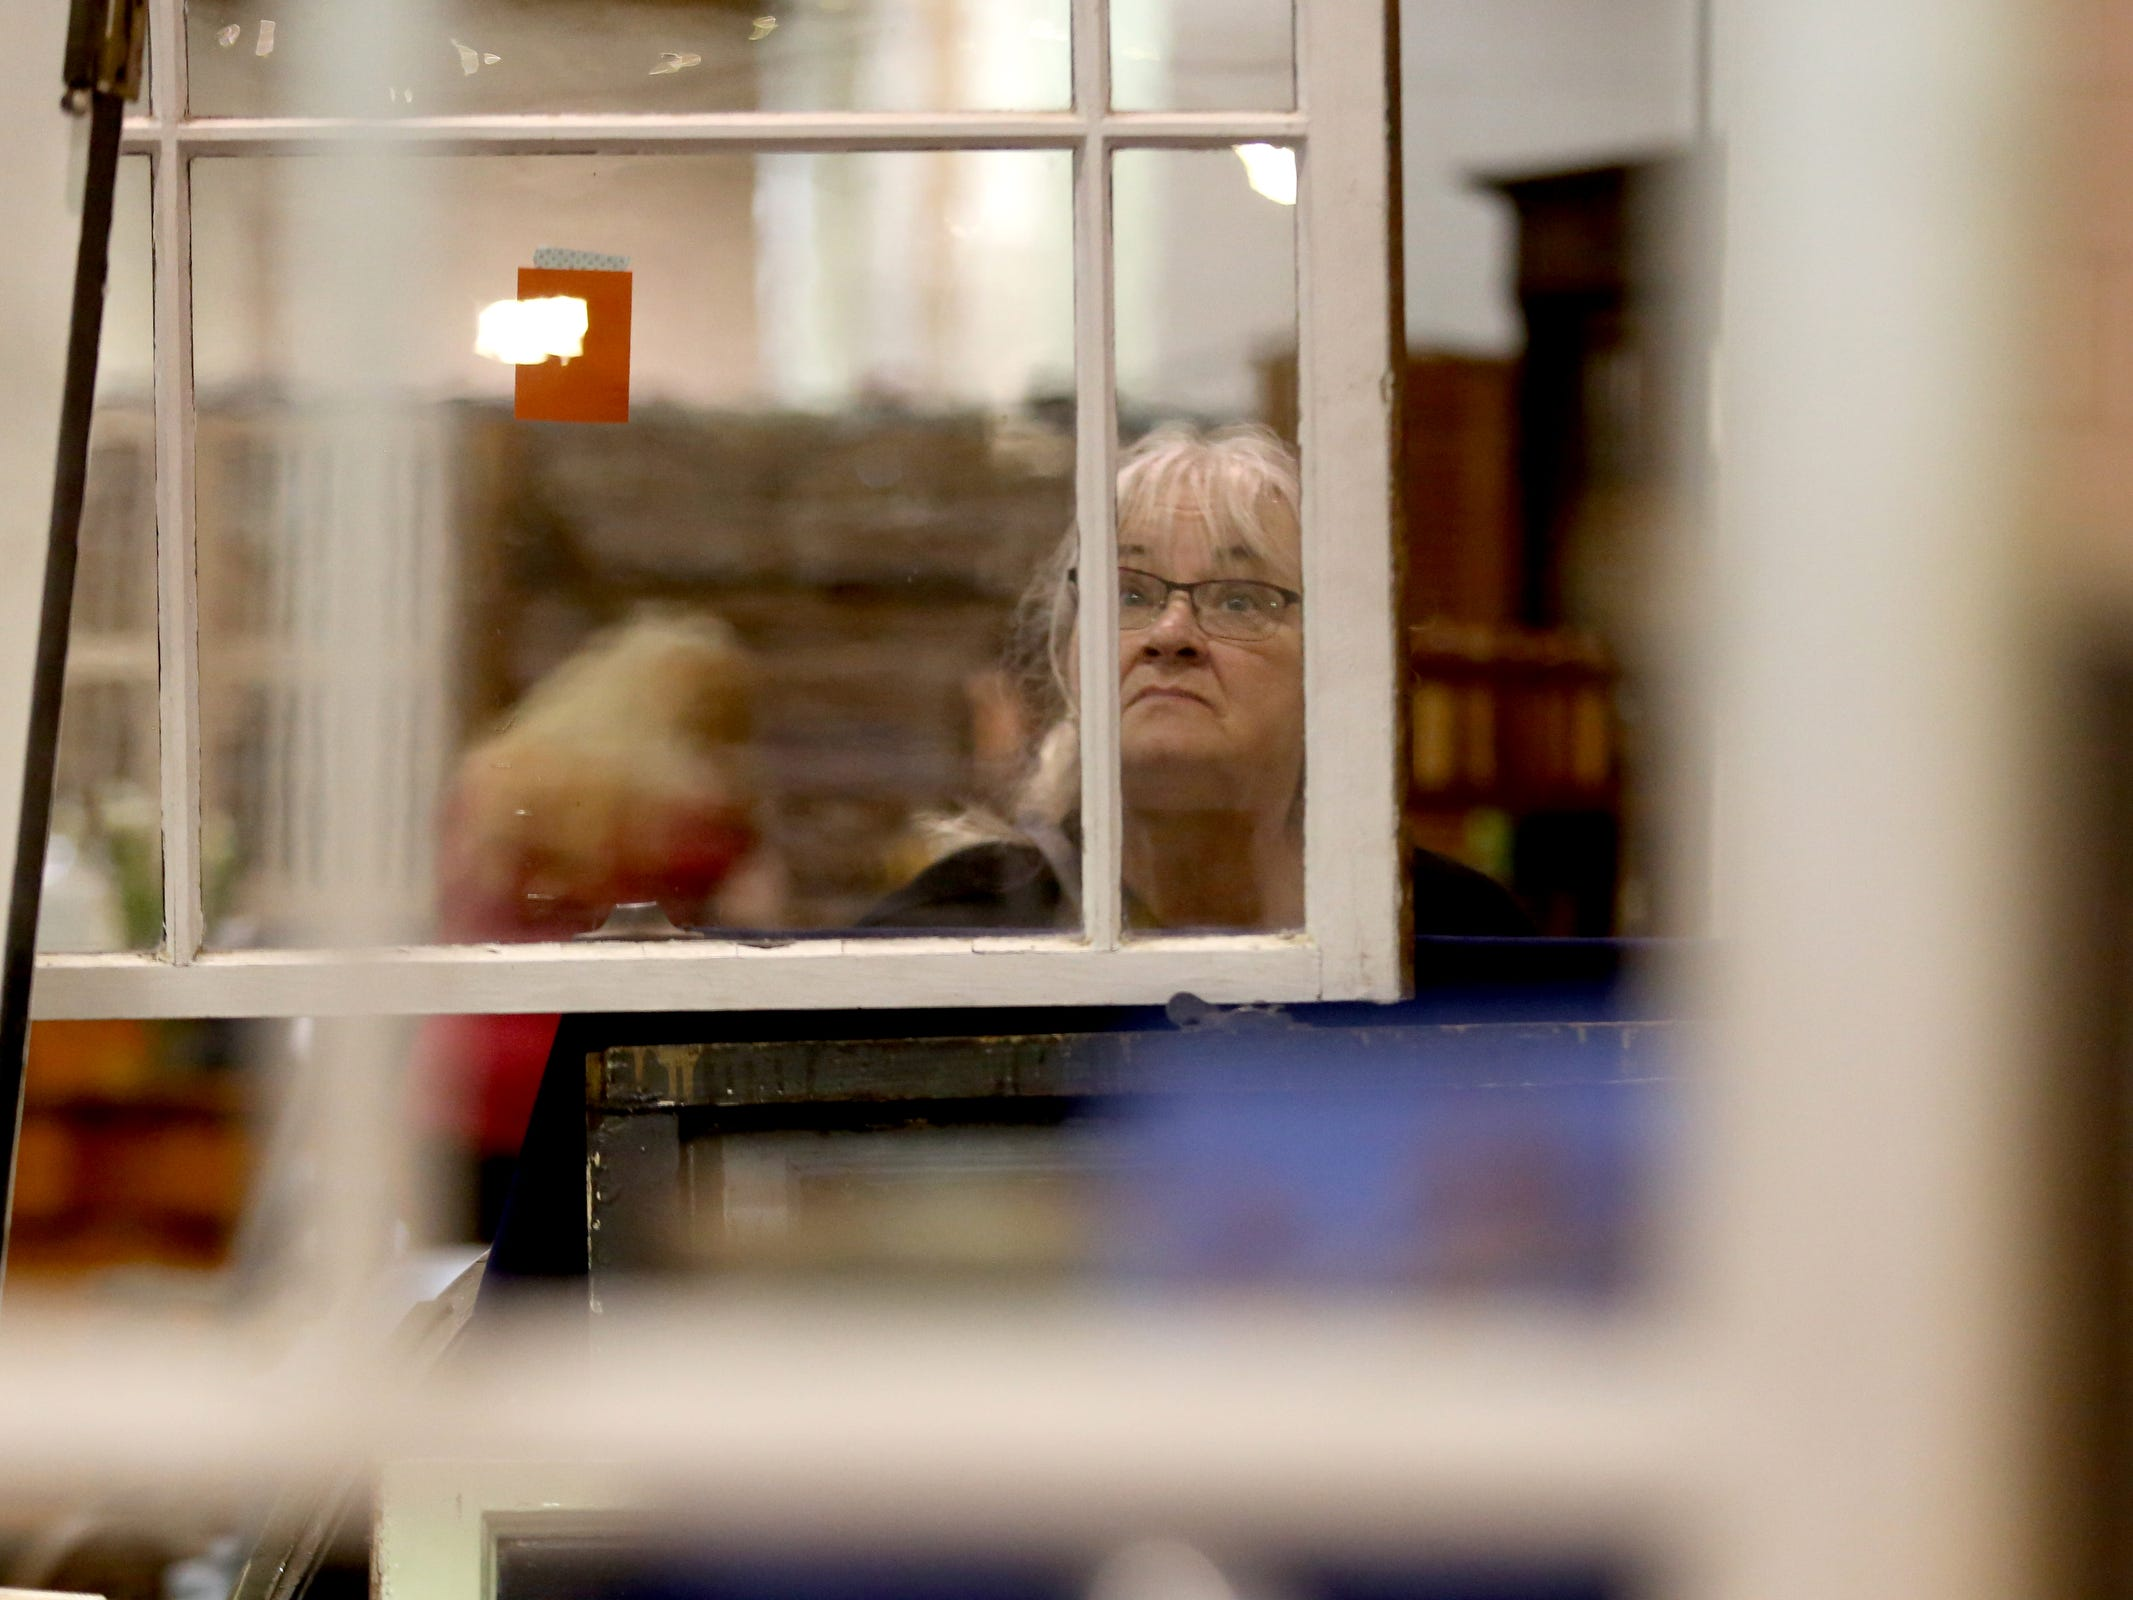 Marilyn Reid, of McMinnville, looks through windows available during The Great Junk Hunt, a traveling vintage market, at the Oregon State Fairgrounds in Salem on April 13, 2019.